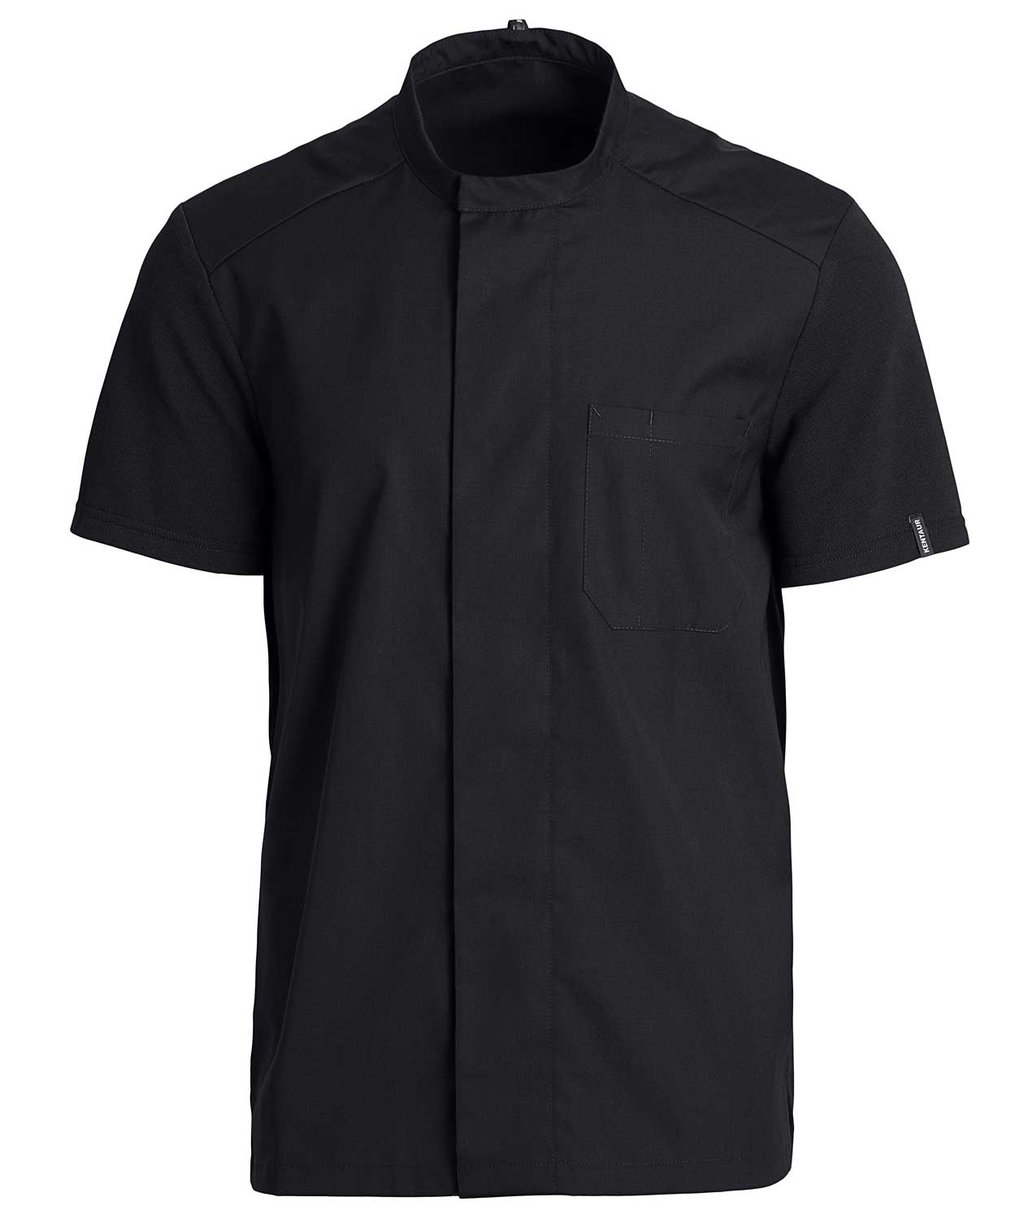 Kentaur short-sleeved unisex pique chefs-/service shirt, Black